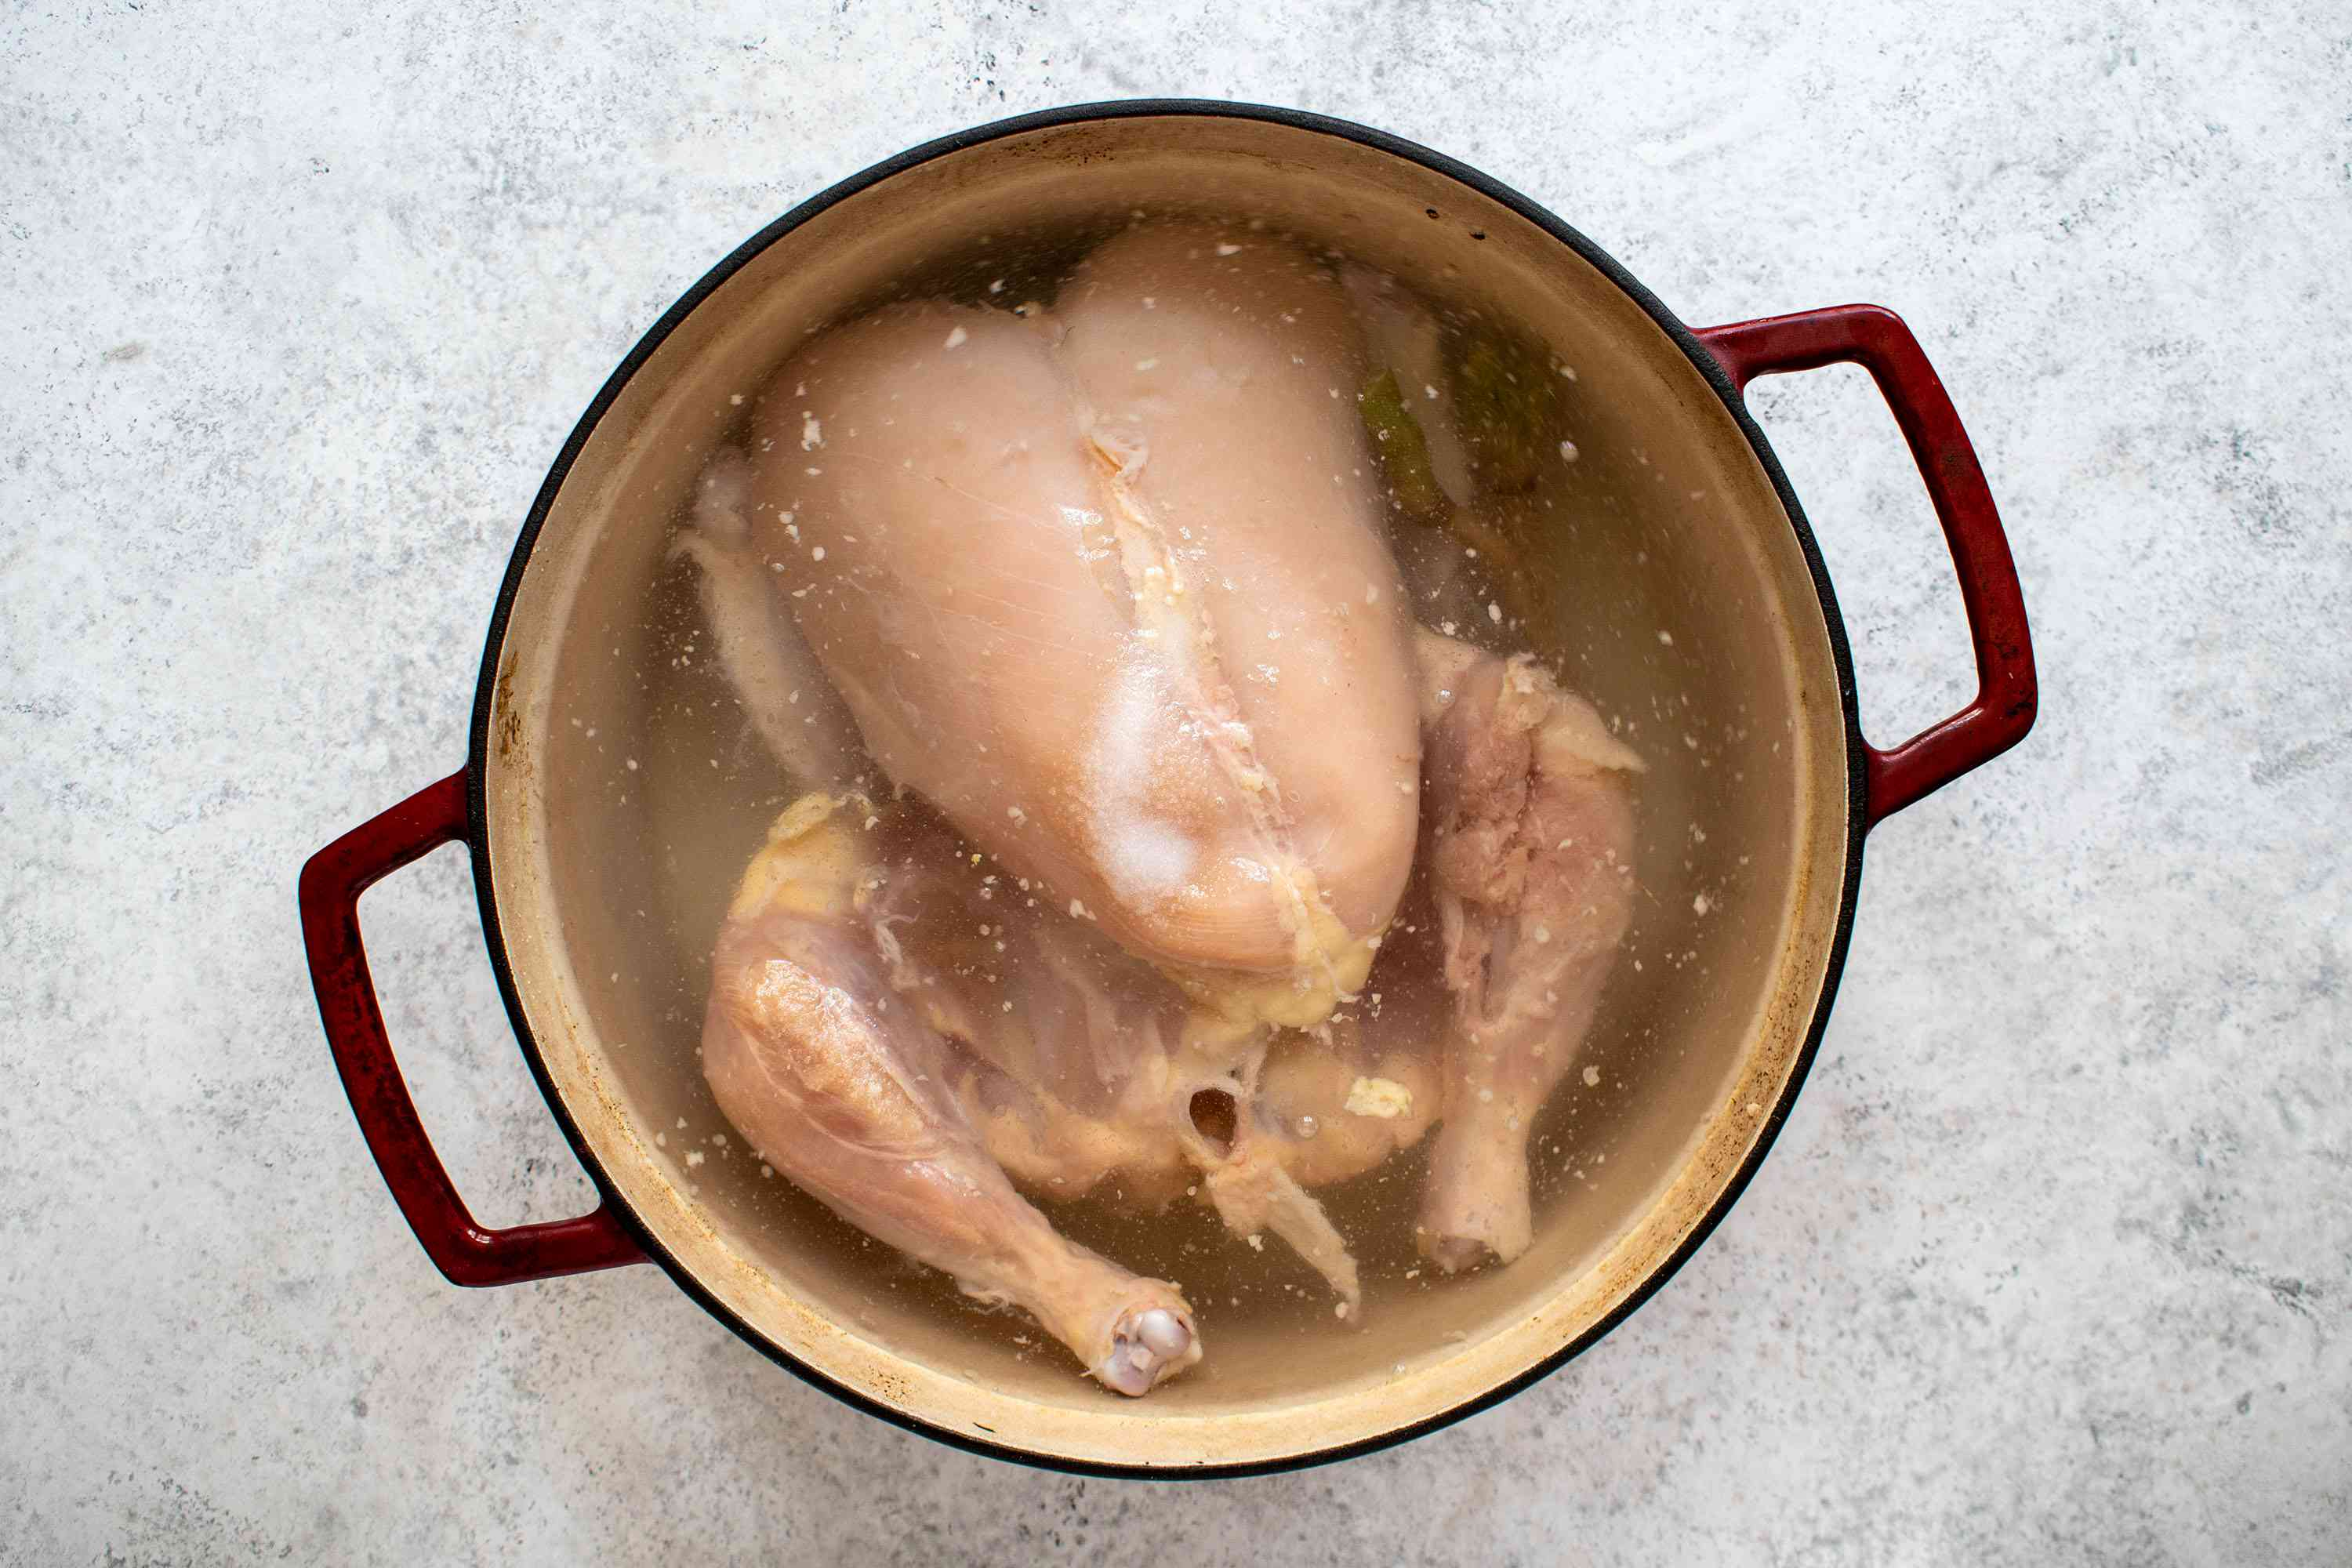 whole chicken boiling in a pot